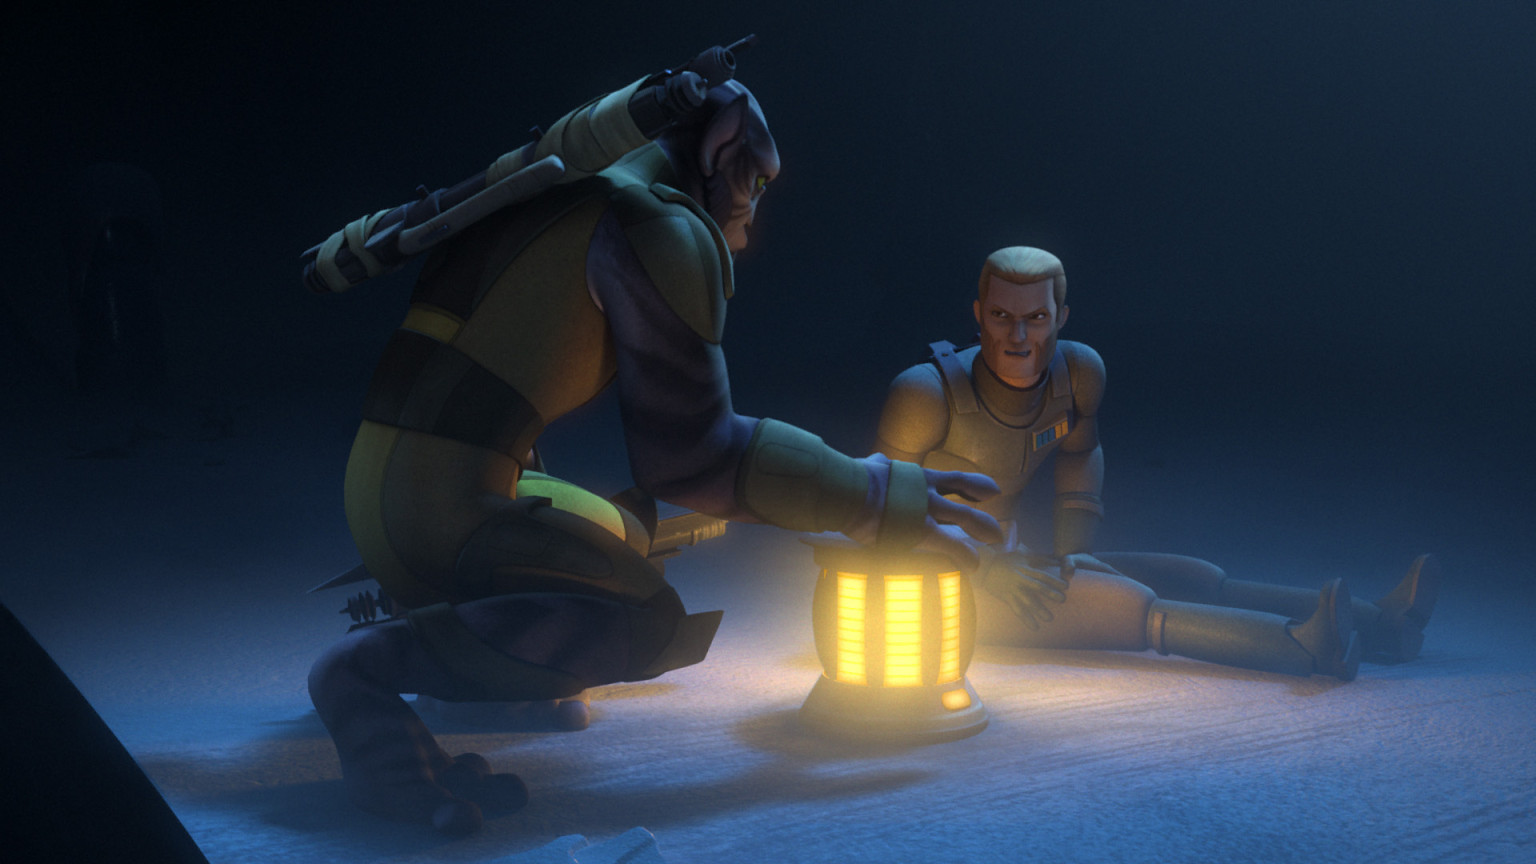 Star Wars Rebels - Agent Kallus and Zeb